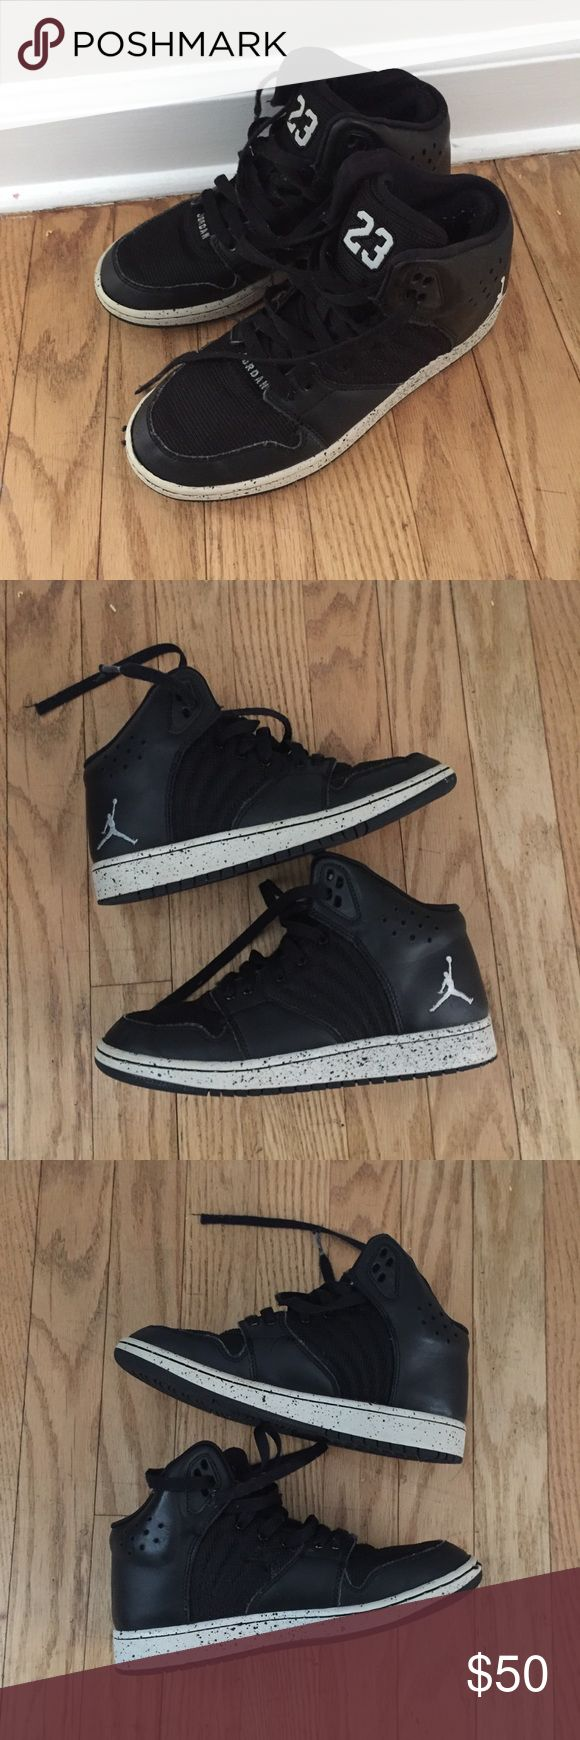 Nike Michael Jordan Kids Size 4.5Y Sneakers Great, minimally worn condition. Youth Size 4.5Y. Colors: Black and White. michael Jordan Shoes Sneakers